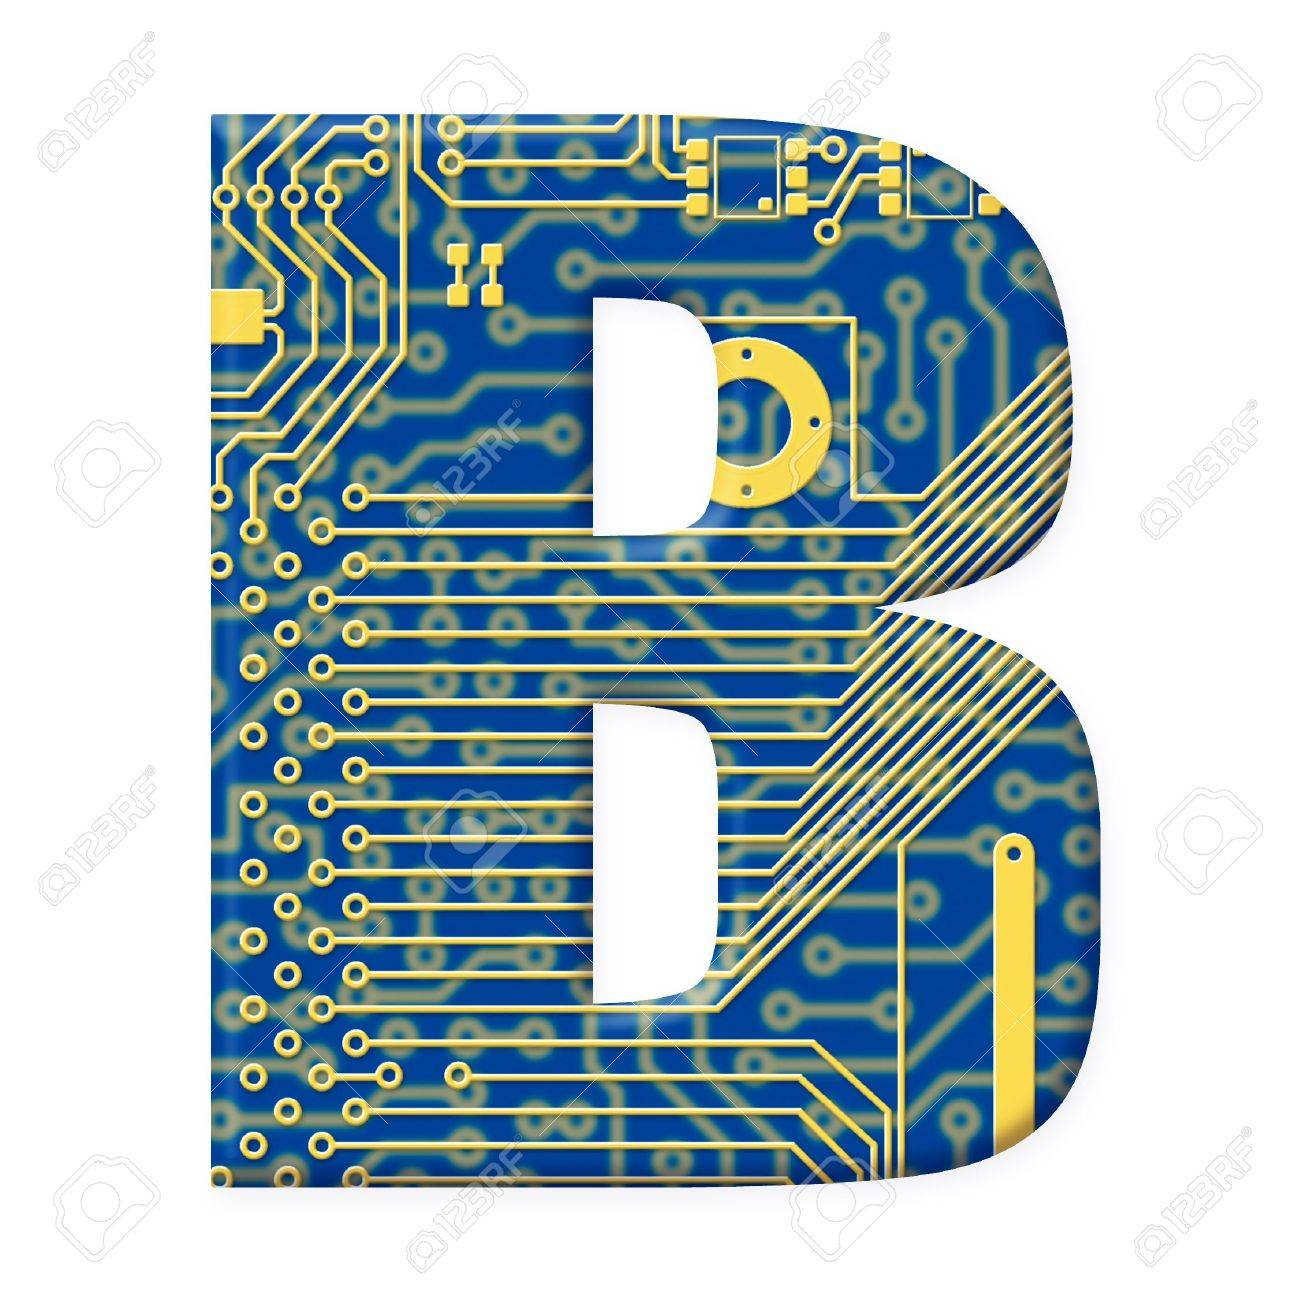 One letter from the electronic technology circuit board alphabet on a white background - B Stock Photo - 6353927